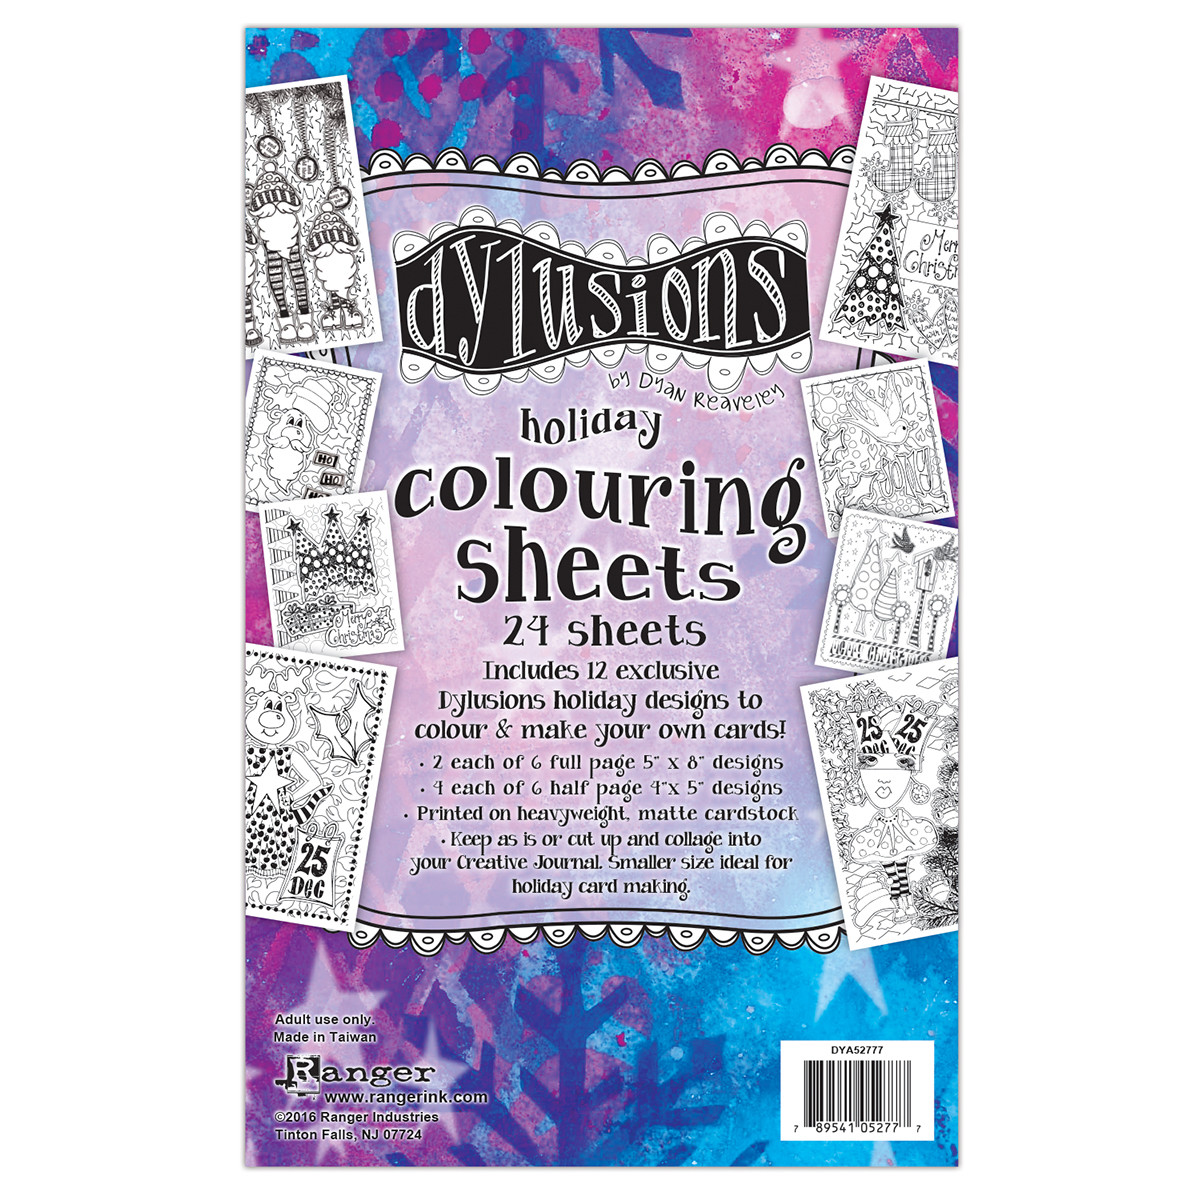 Dylusions Colouring Sheets Holiday